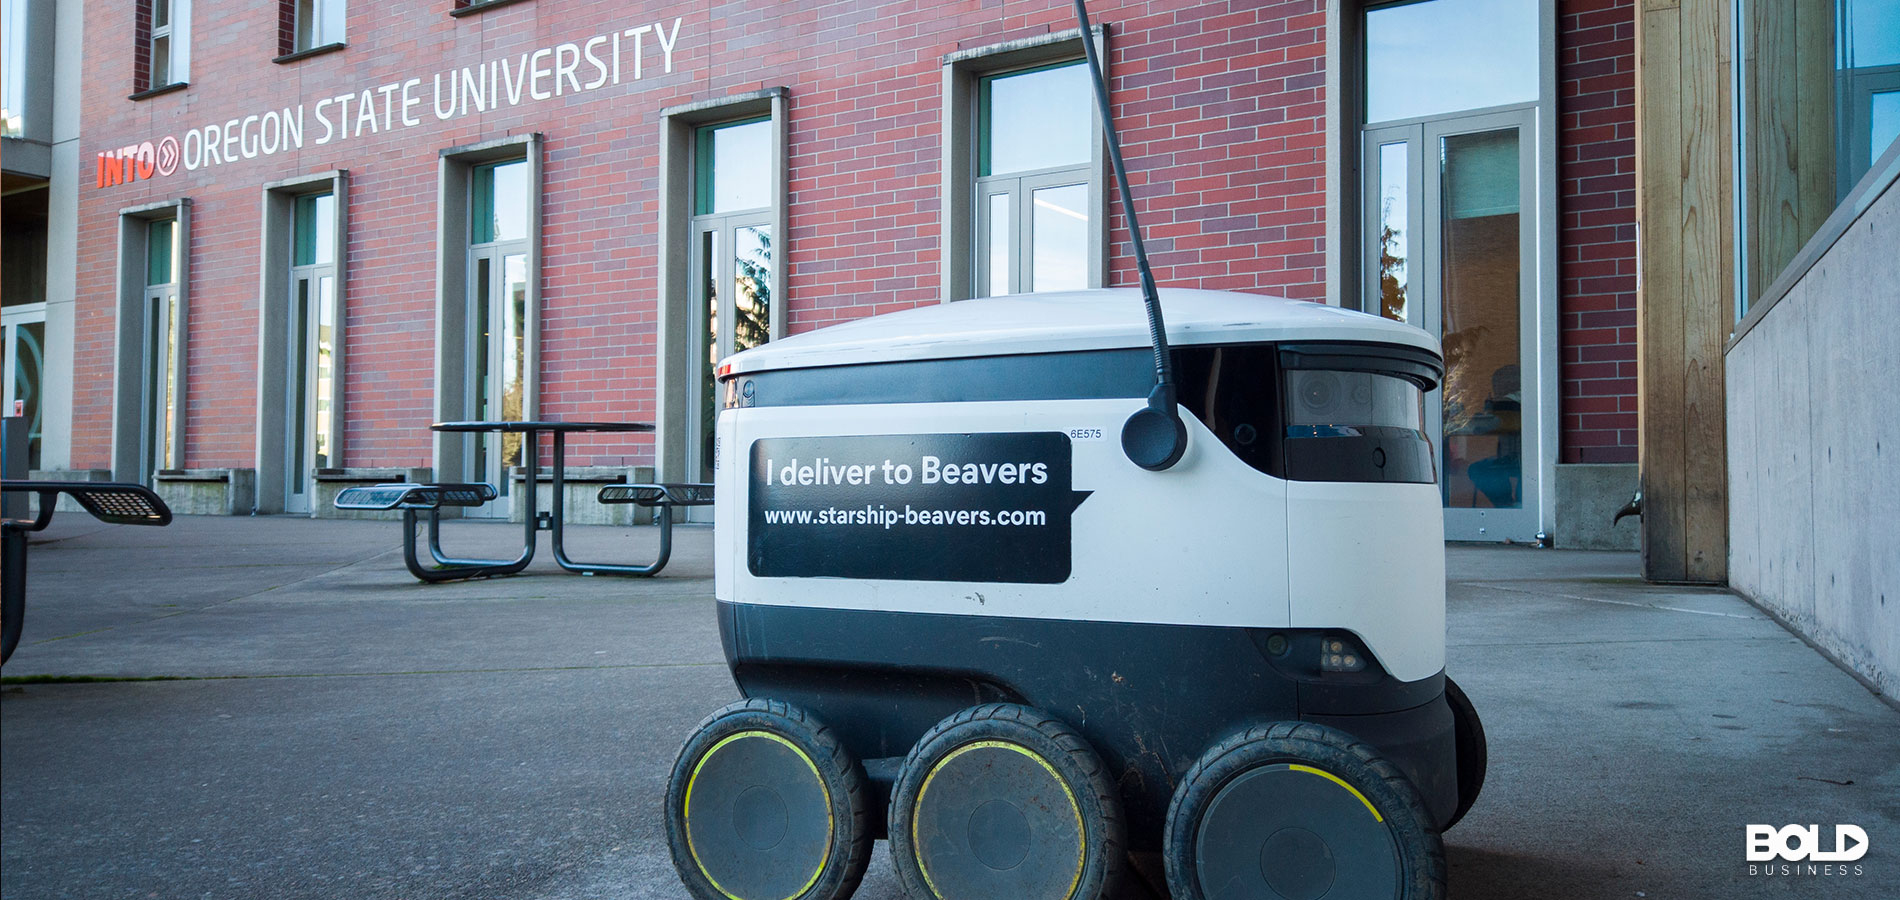 A food delivery robot delivering a pizza to some kids in the dorm